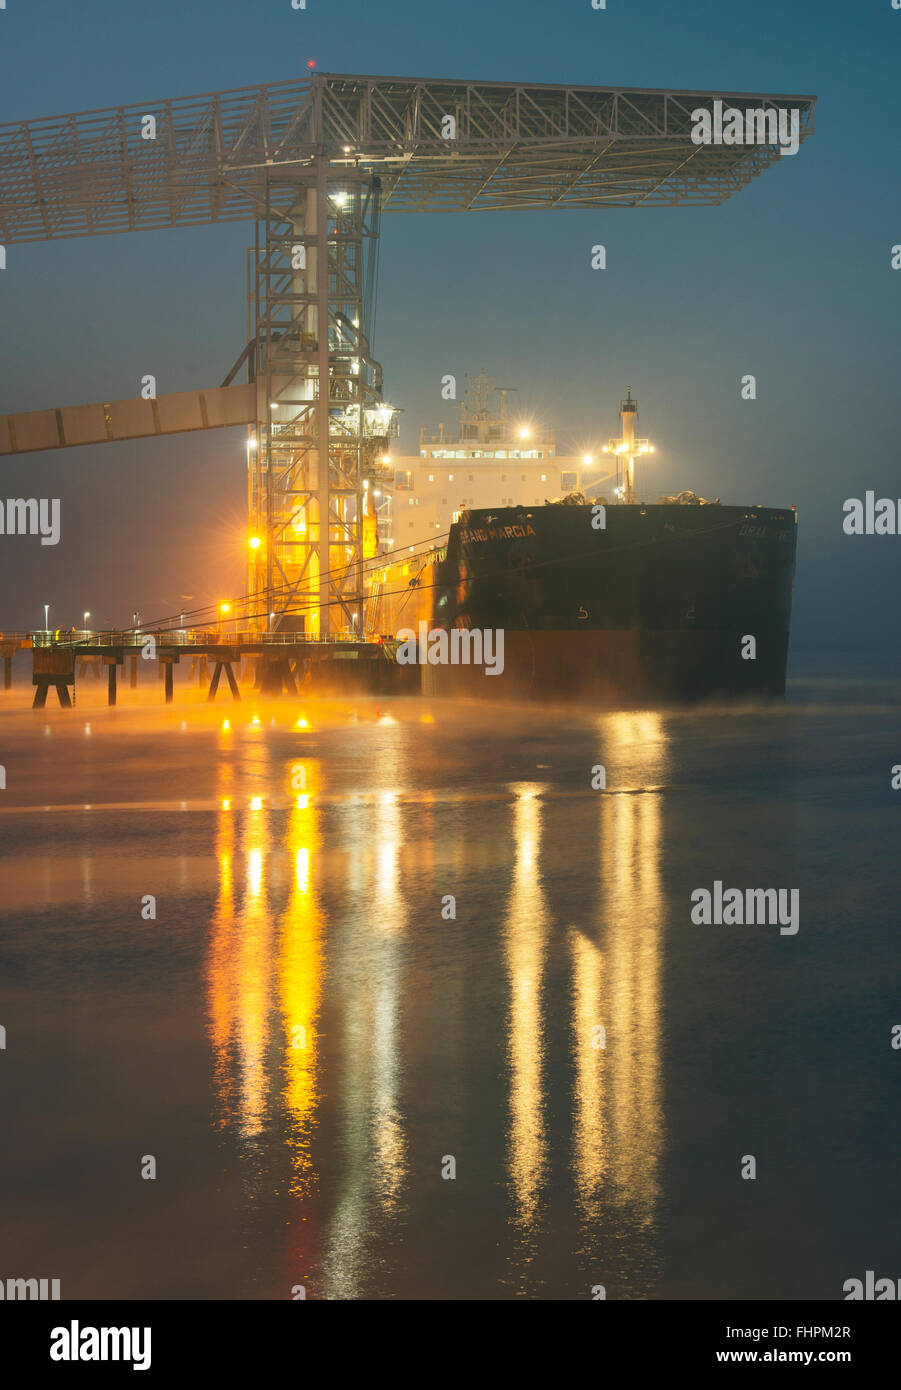 Temco Grain Elevator, loading grain into bulk carrier Grand Marcia, based in Hong Kong, Tacoma, Washington, night - Stock Image